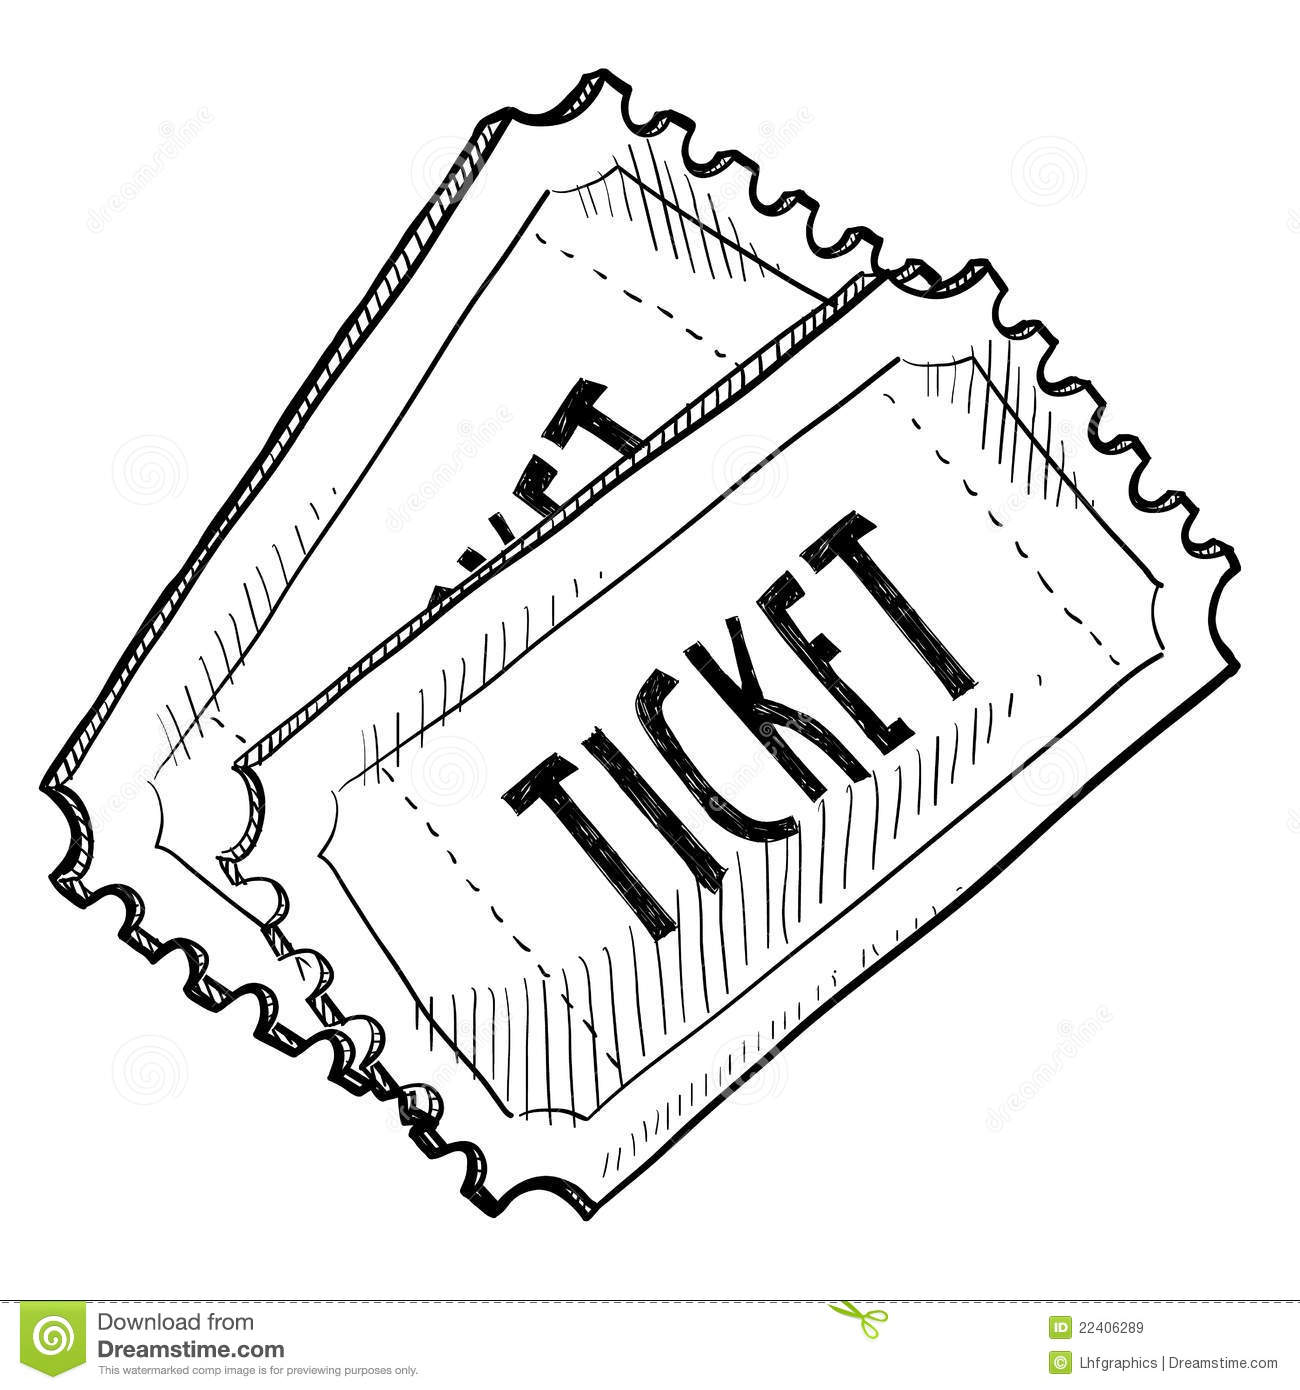 Concert or event ticket drawing Royalty Free Stock Images